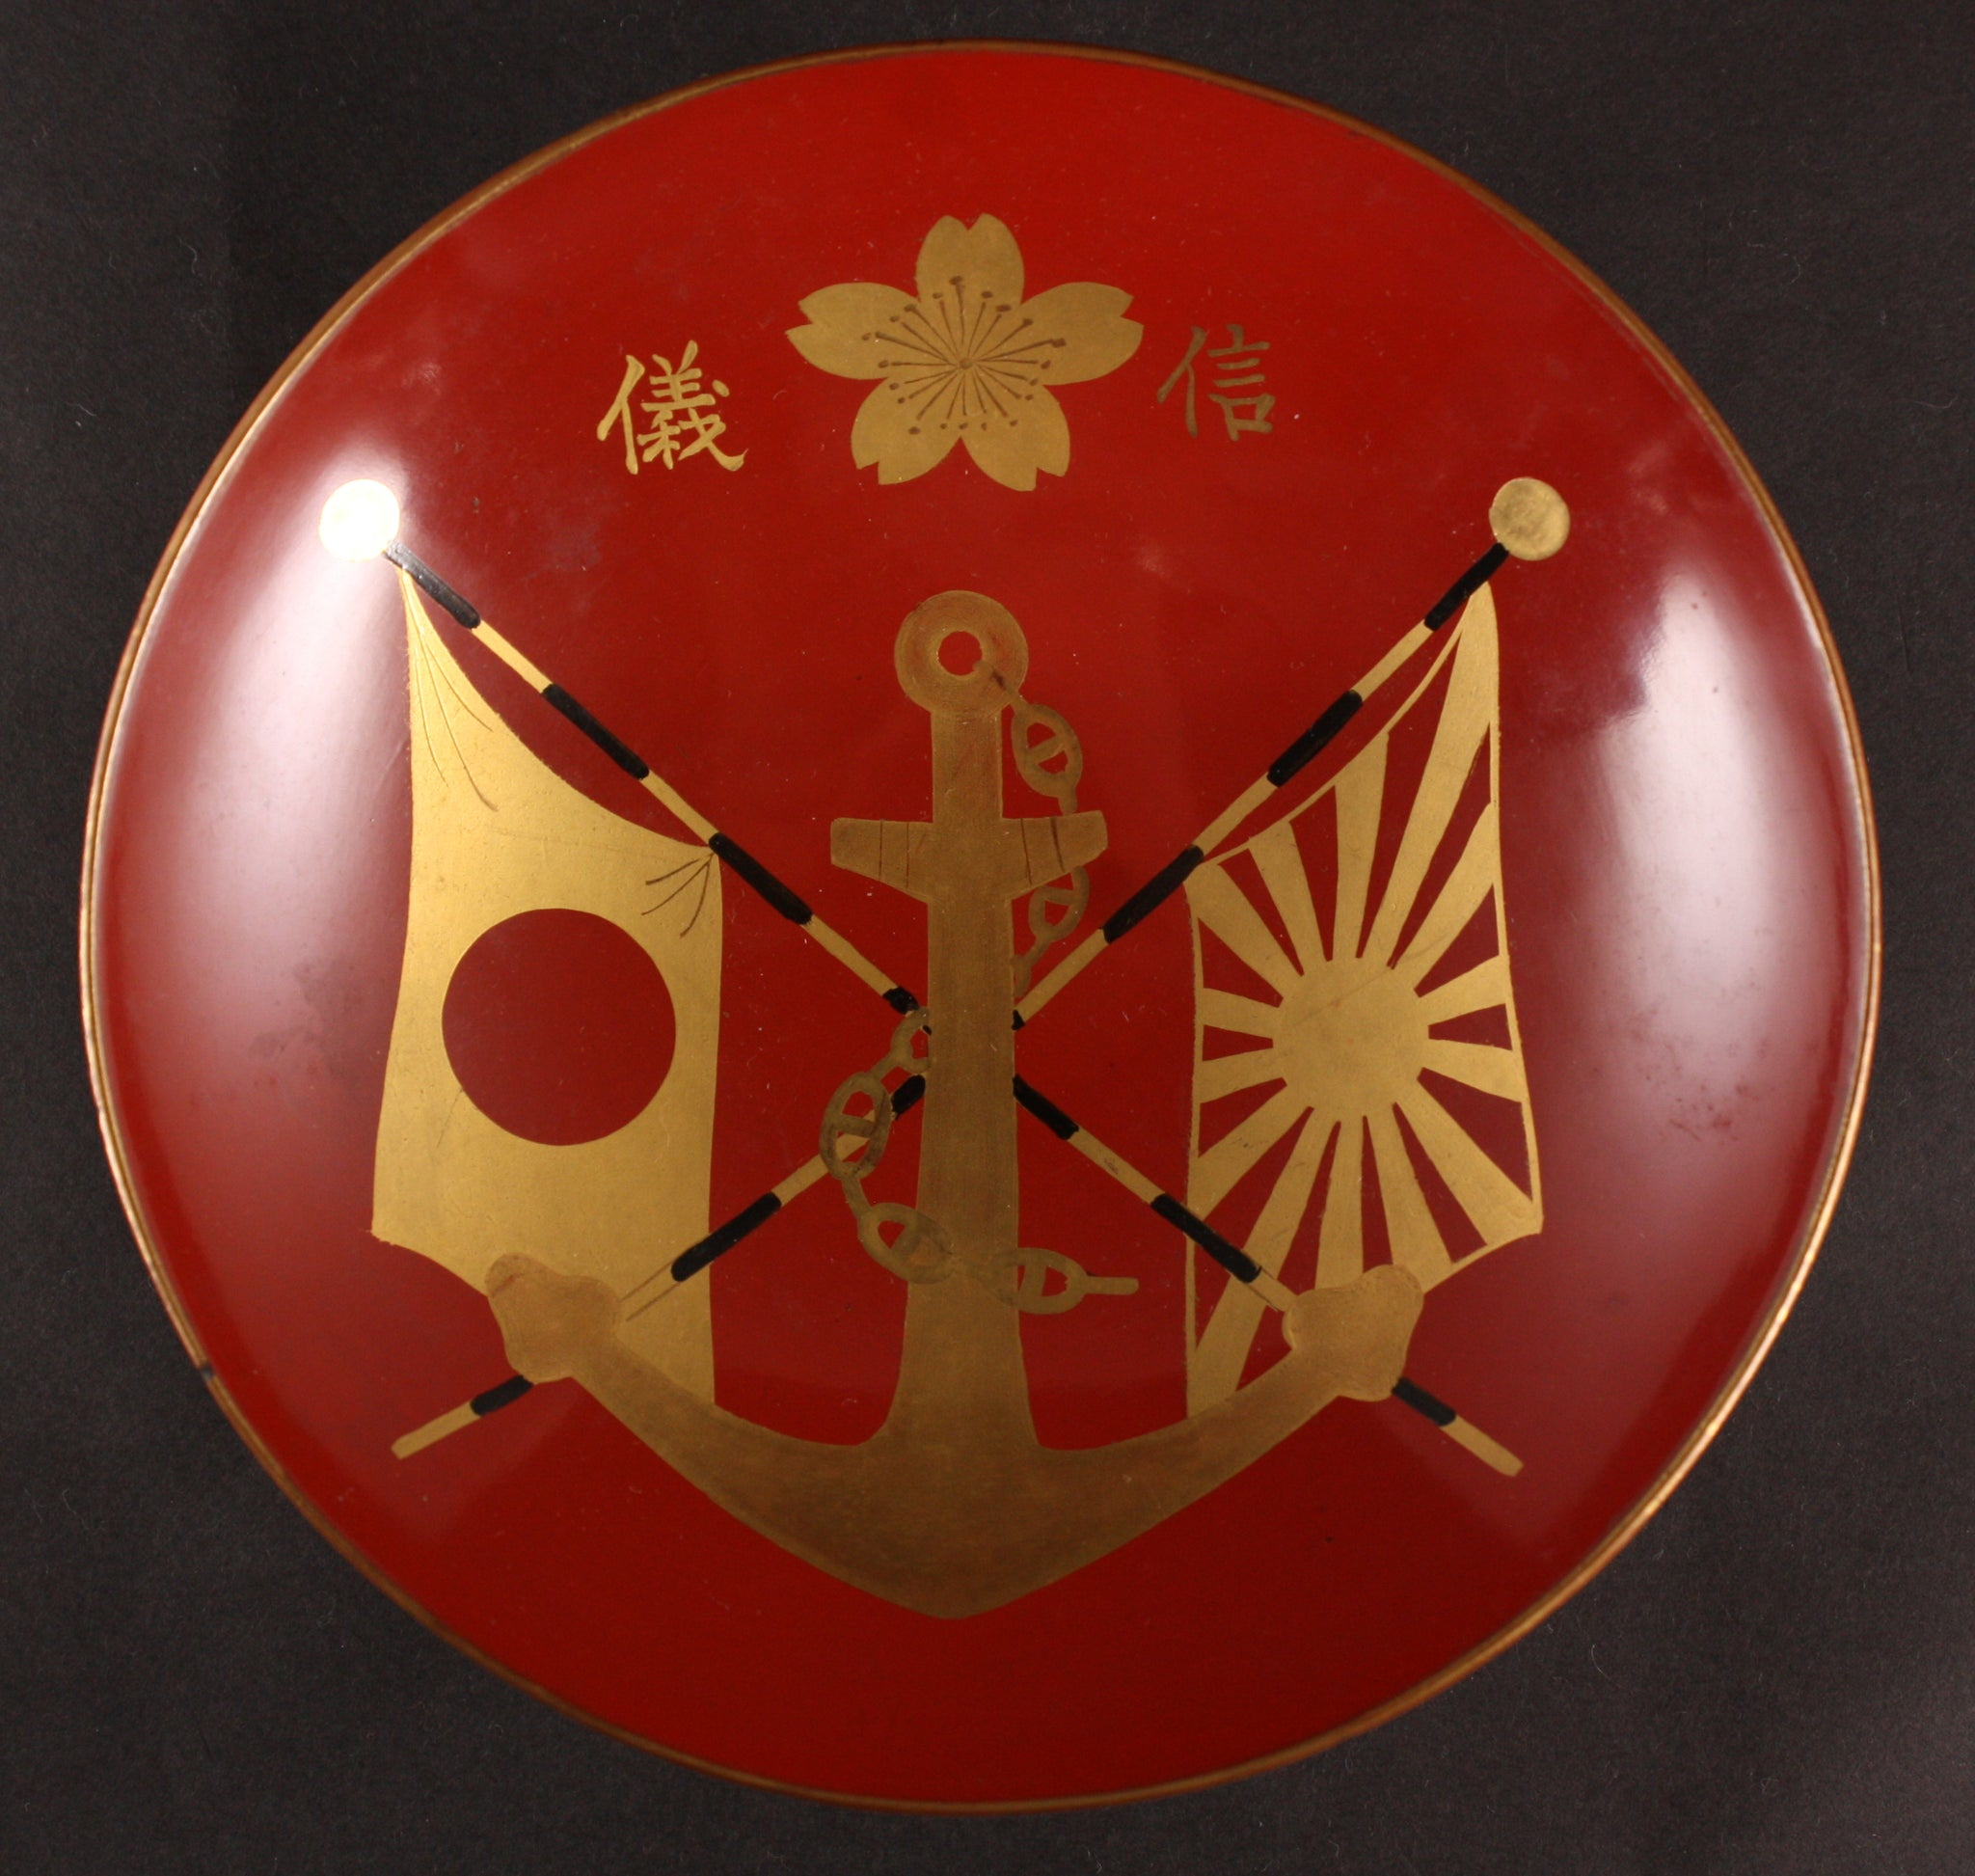 Antique Japanese Military Cruiser Iwate Anchor Flags Navy Lacquer Sake Cup